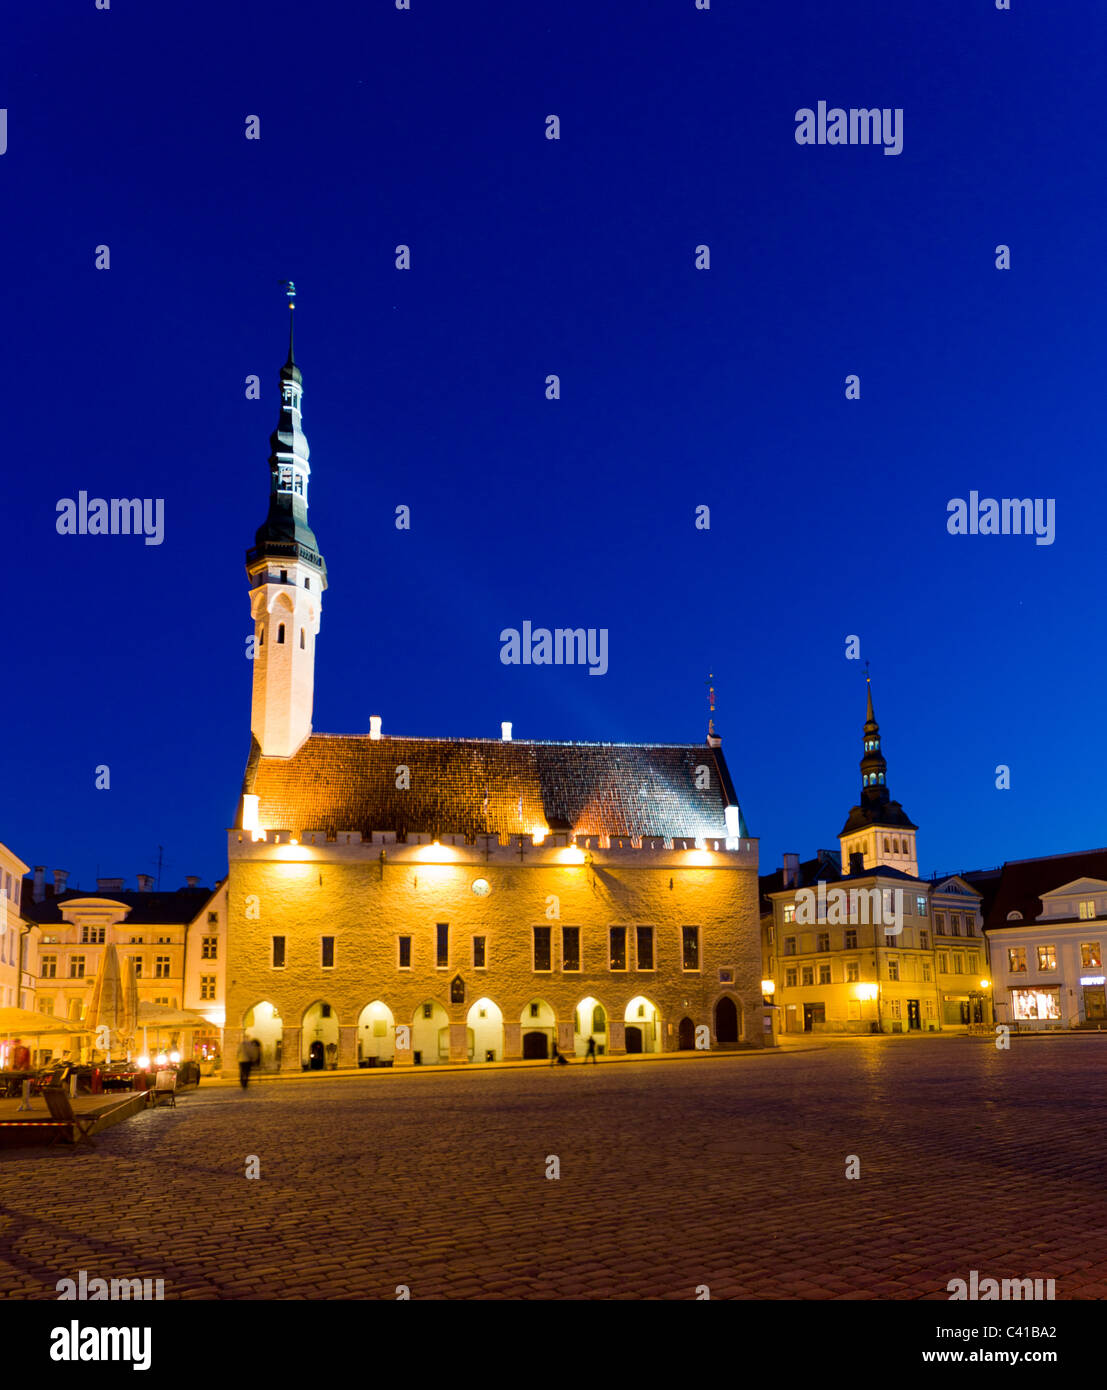 Tallinn in Estonia - Town hall in Raekoja Square at night - Stock Image